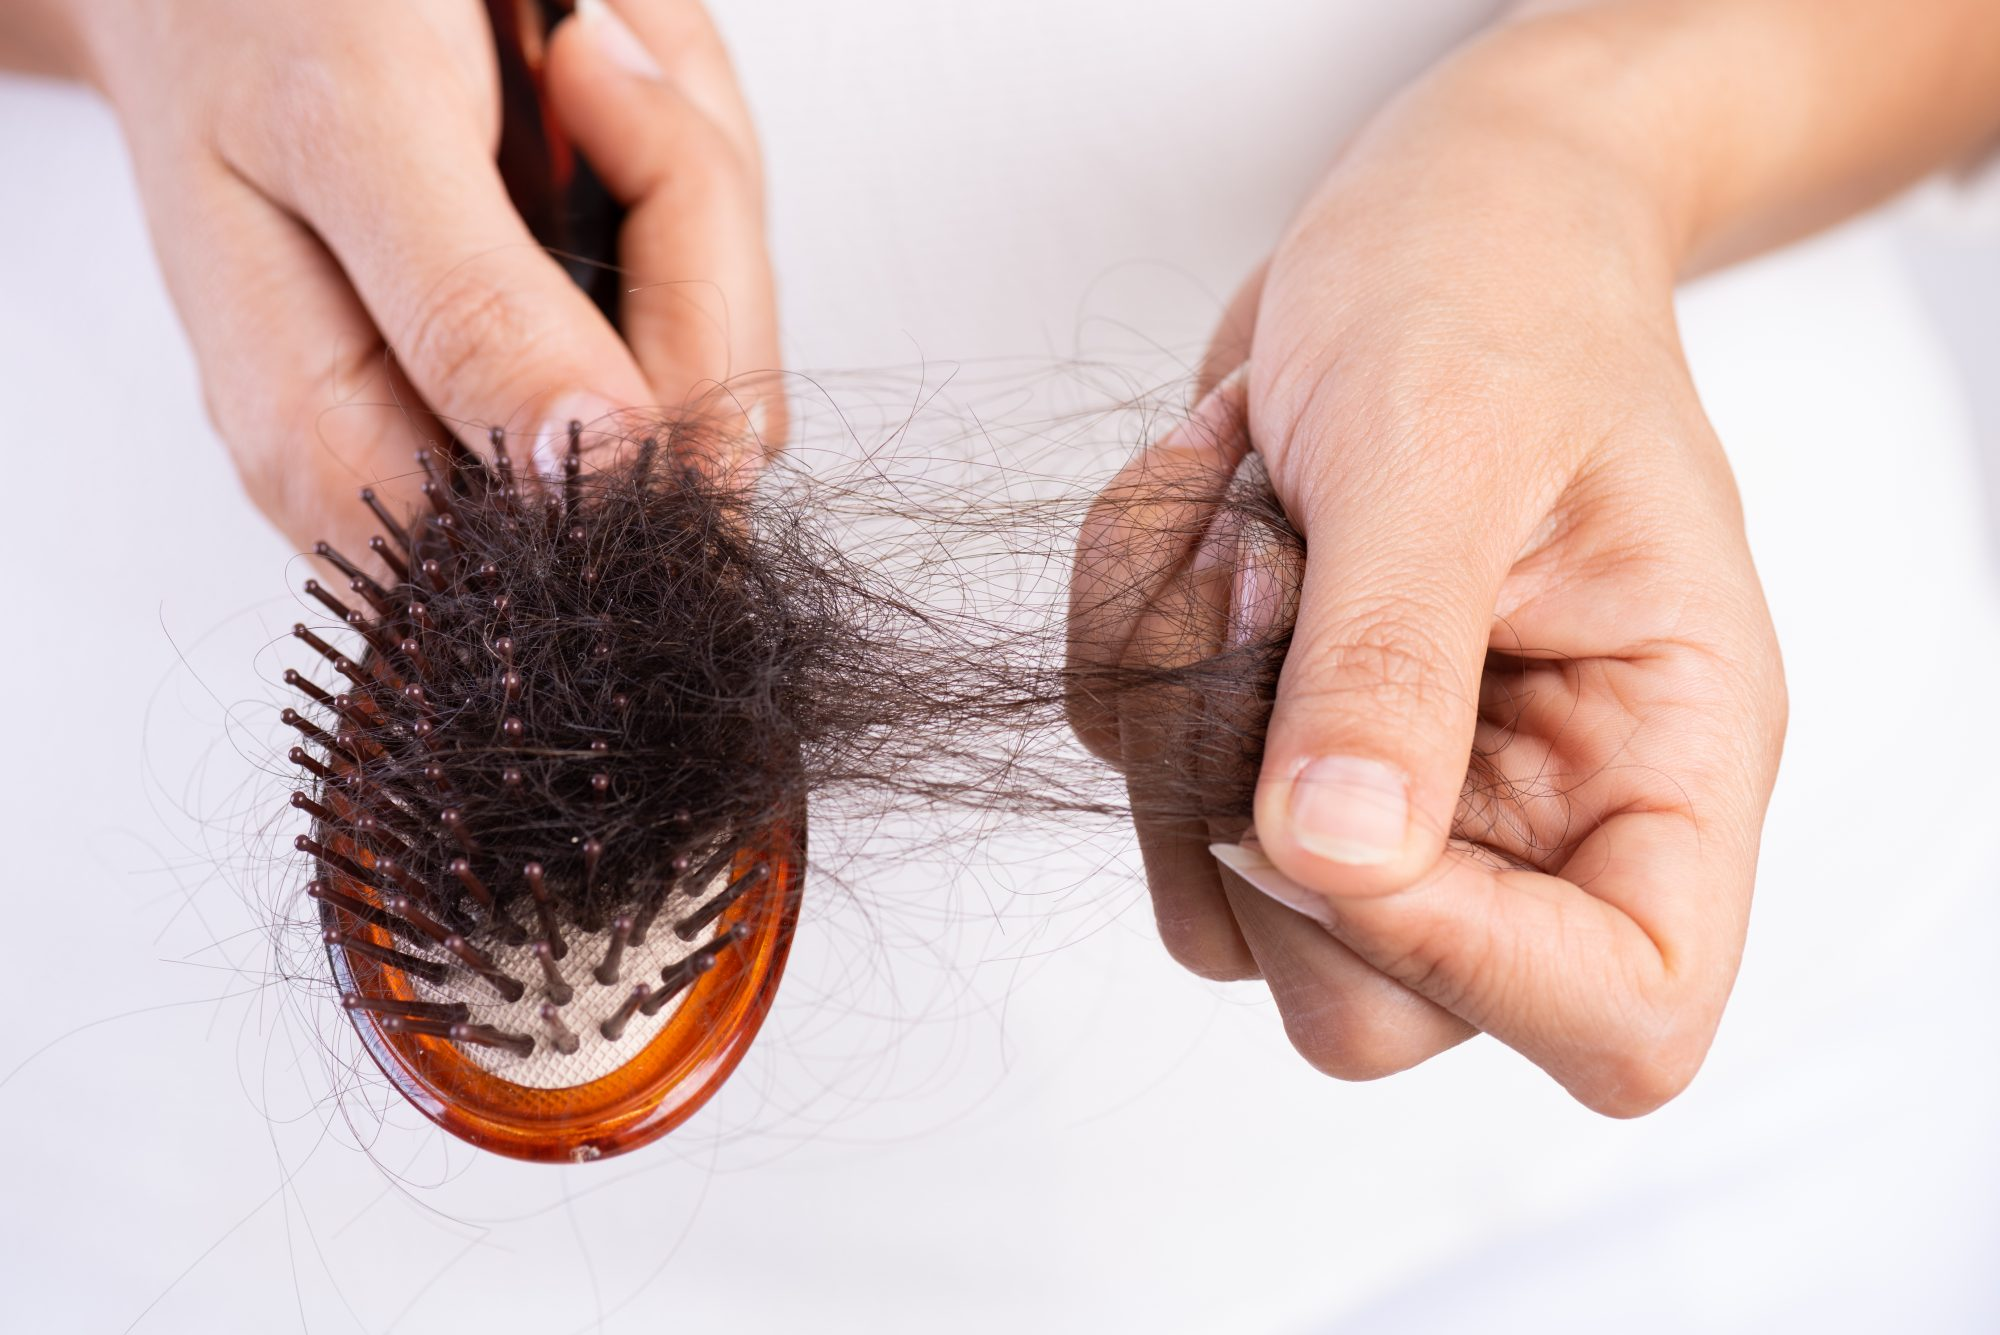 BEWARE OF THESE 6 DISEASES THAT CAUSE HAIR FALL